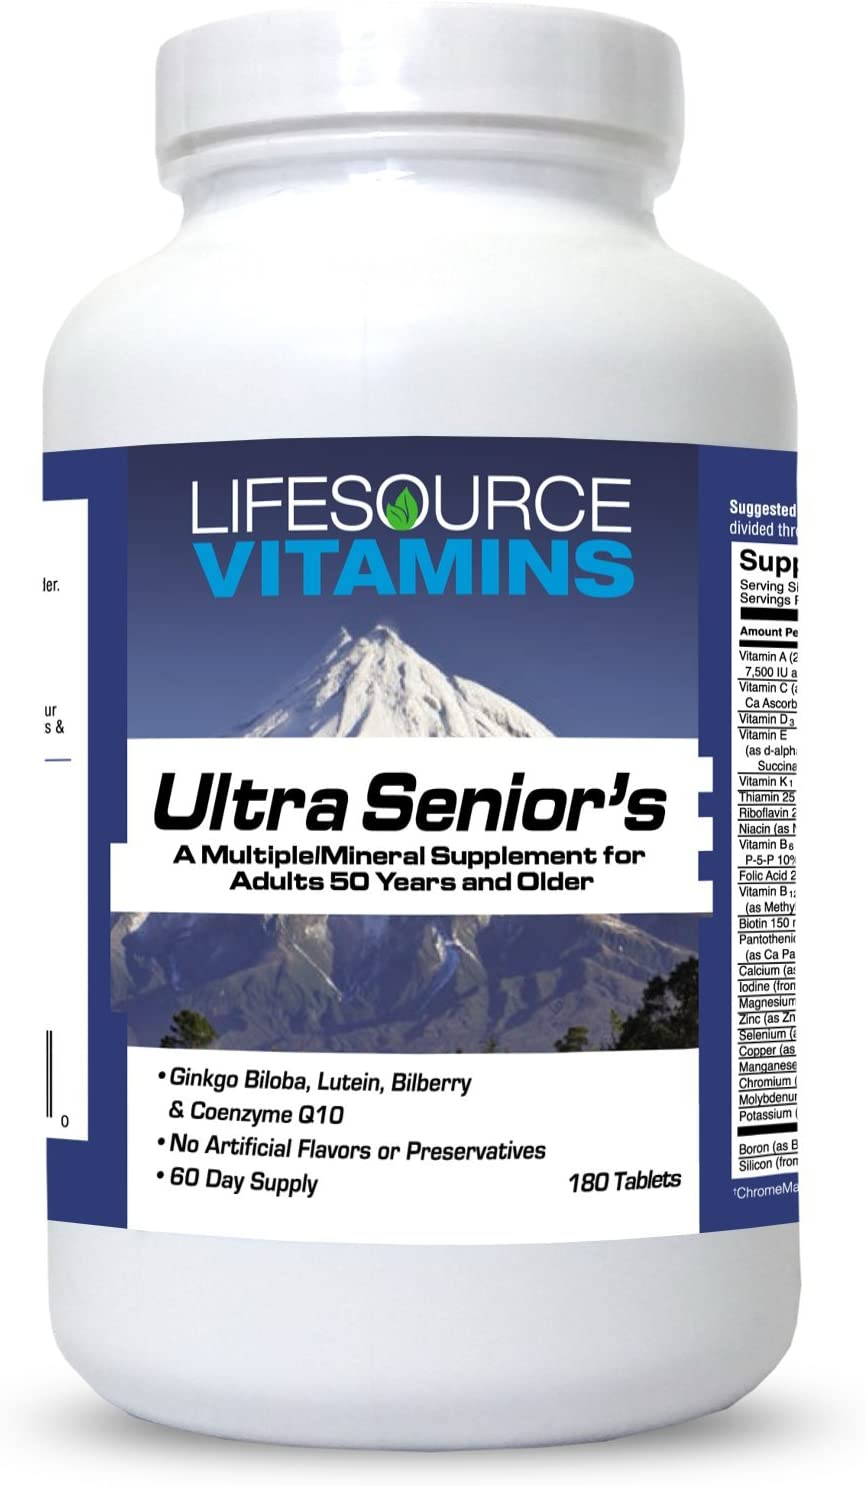 LifeSource Ultra Senior Multi Vitamin & Mineral - 60 Ingredients Synergistically Blended for Seniors - Men and Women - 180 Tabs -